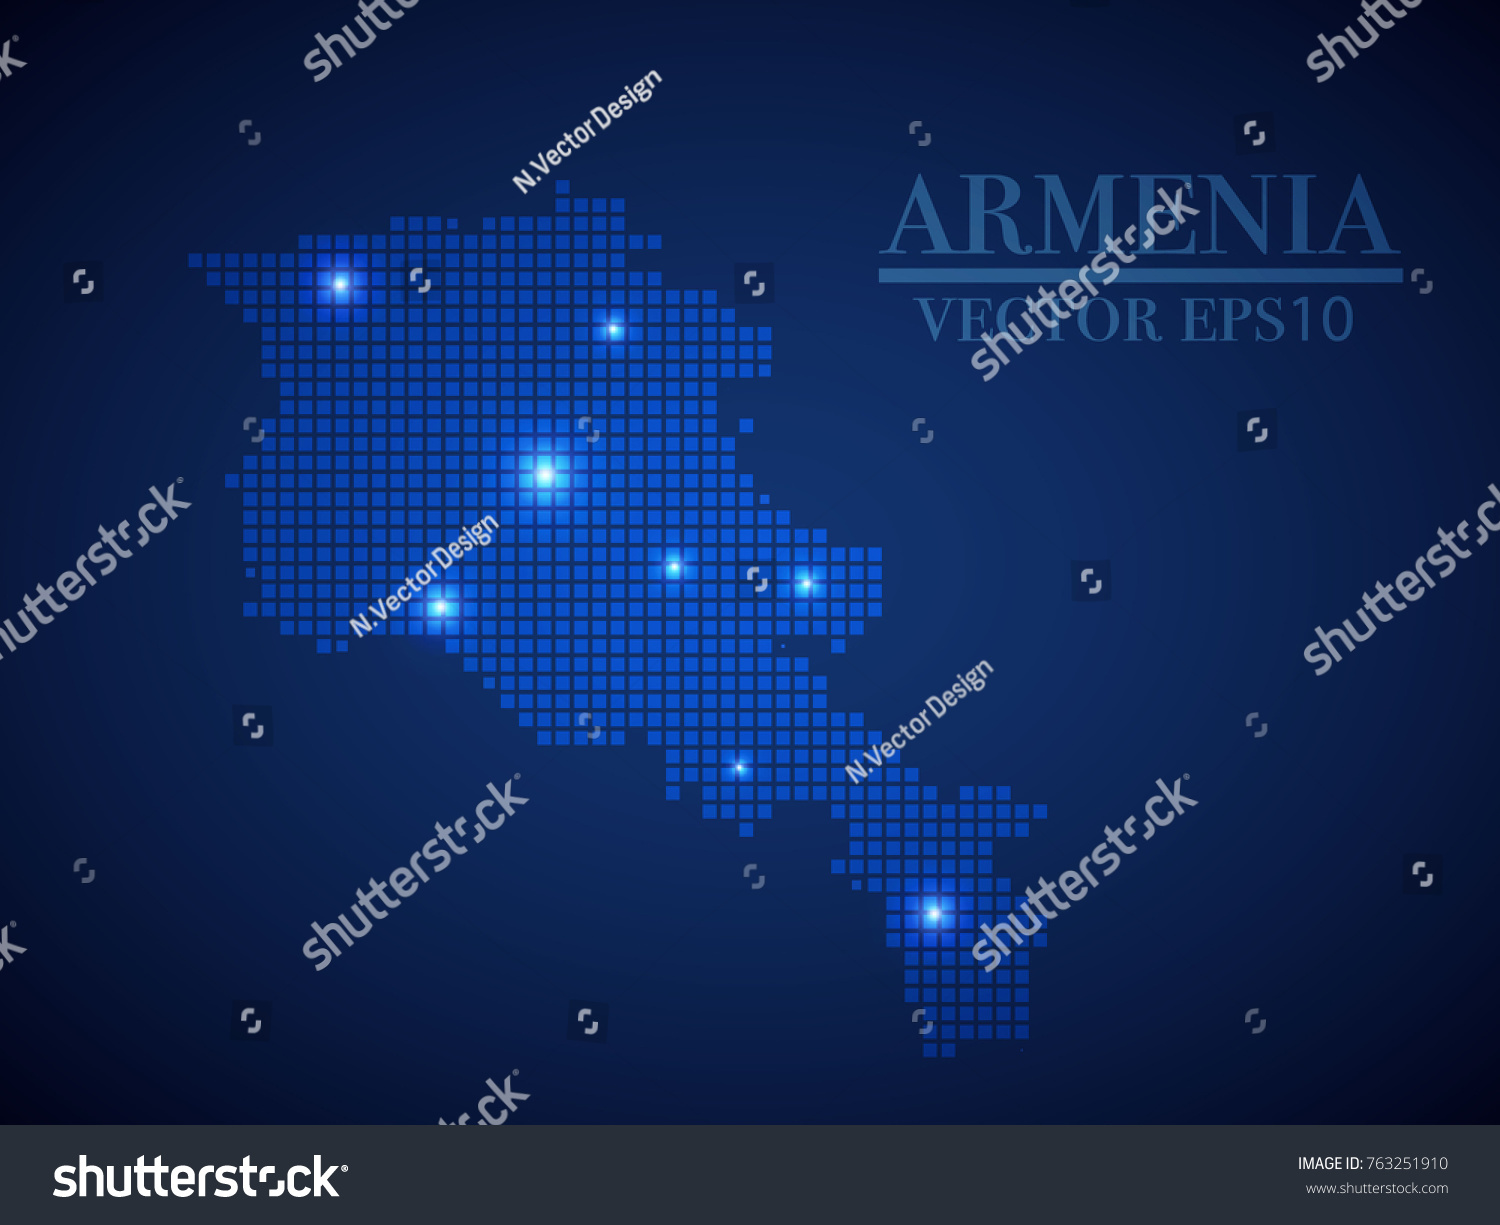 Armenia Map Page Symbol Your Web Stock Vector HD  Royalty Free     armenia map page symbol for your web site design armenia map logo  app  UI